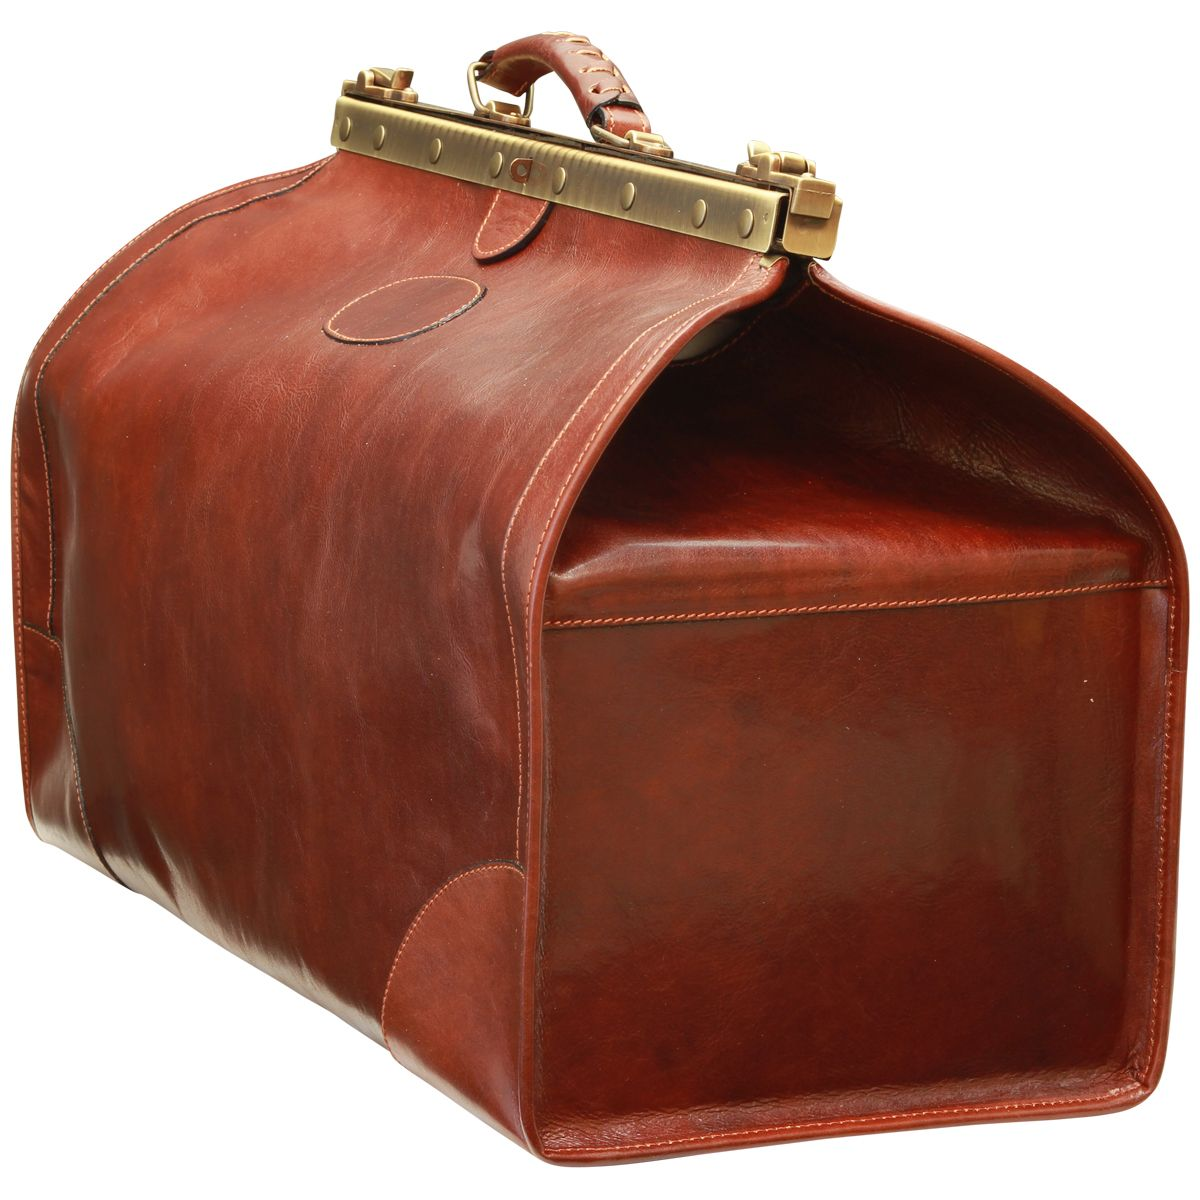 Explore Leather Luggage, Leather Bags, and more!